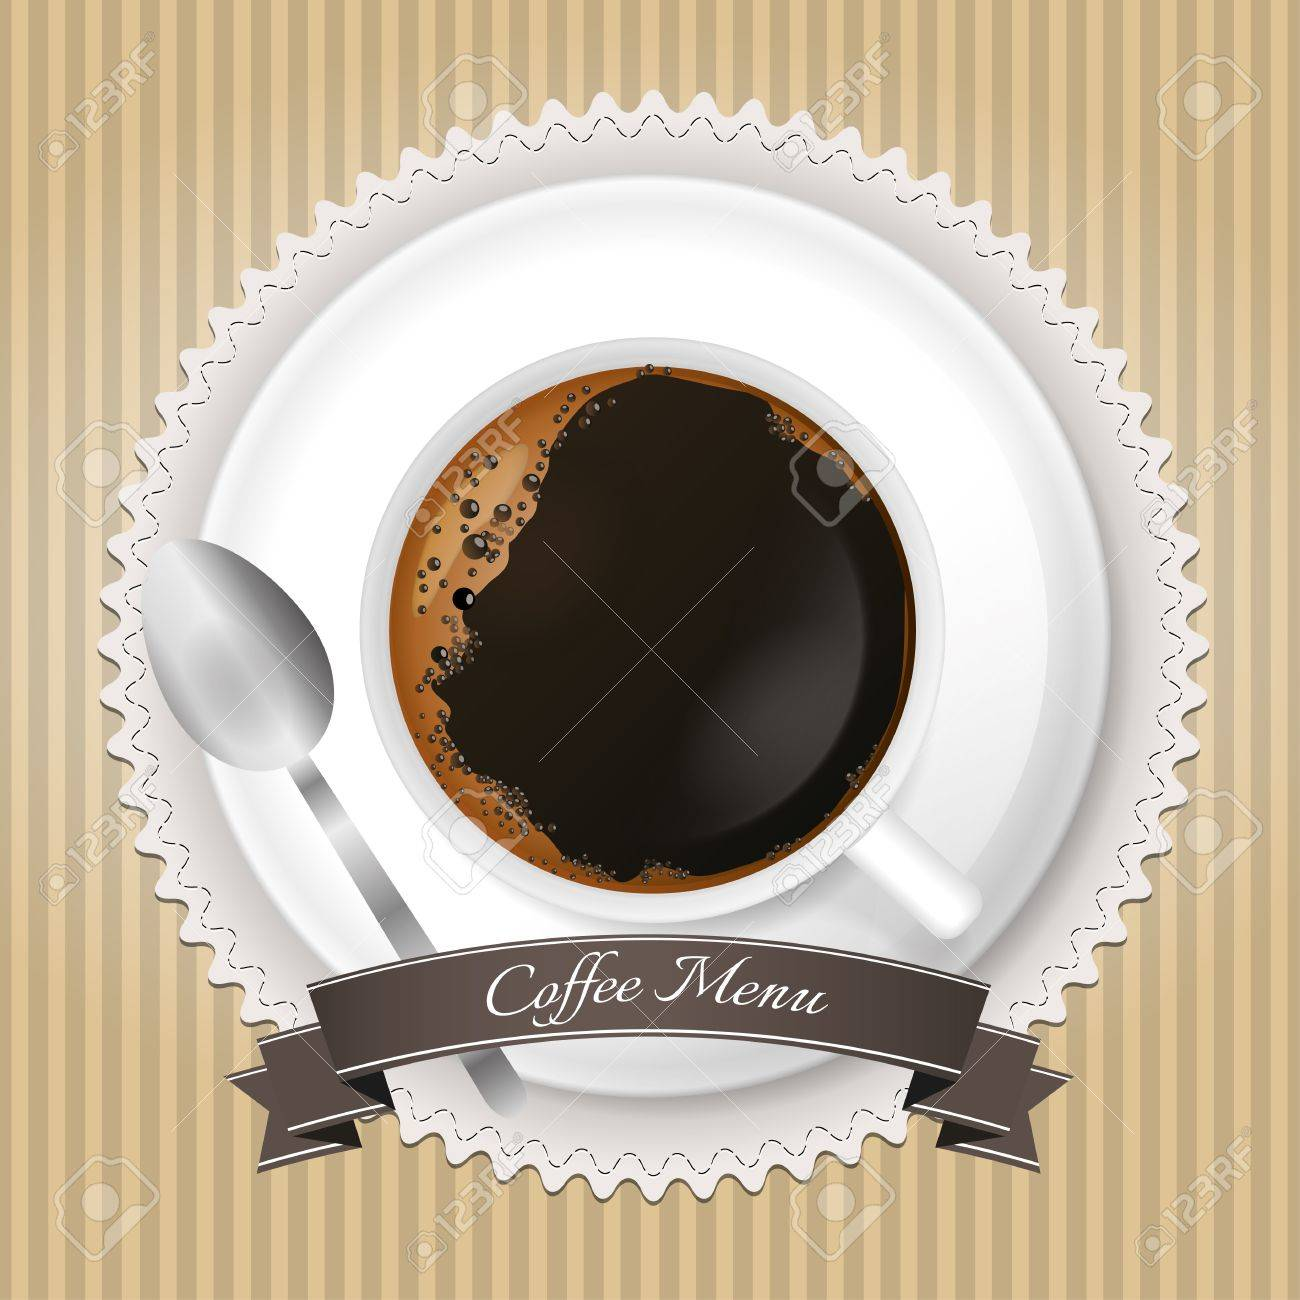 Coffee menu background with cup and brown ribbon Stock Vector - 17676102